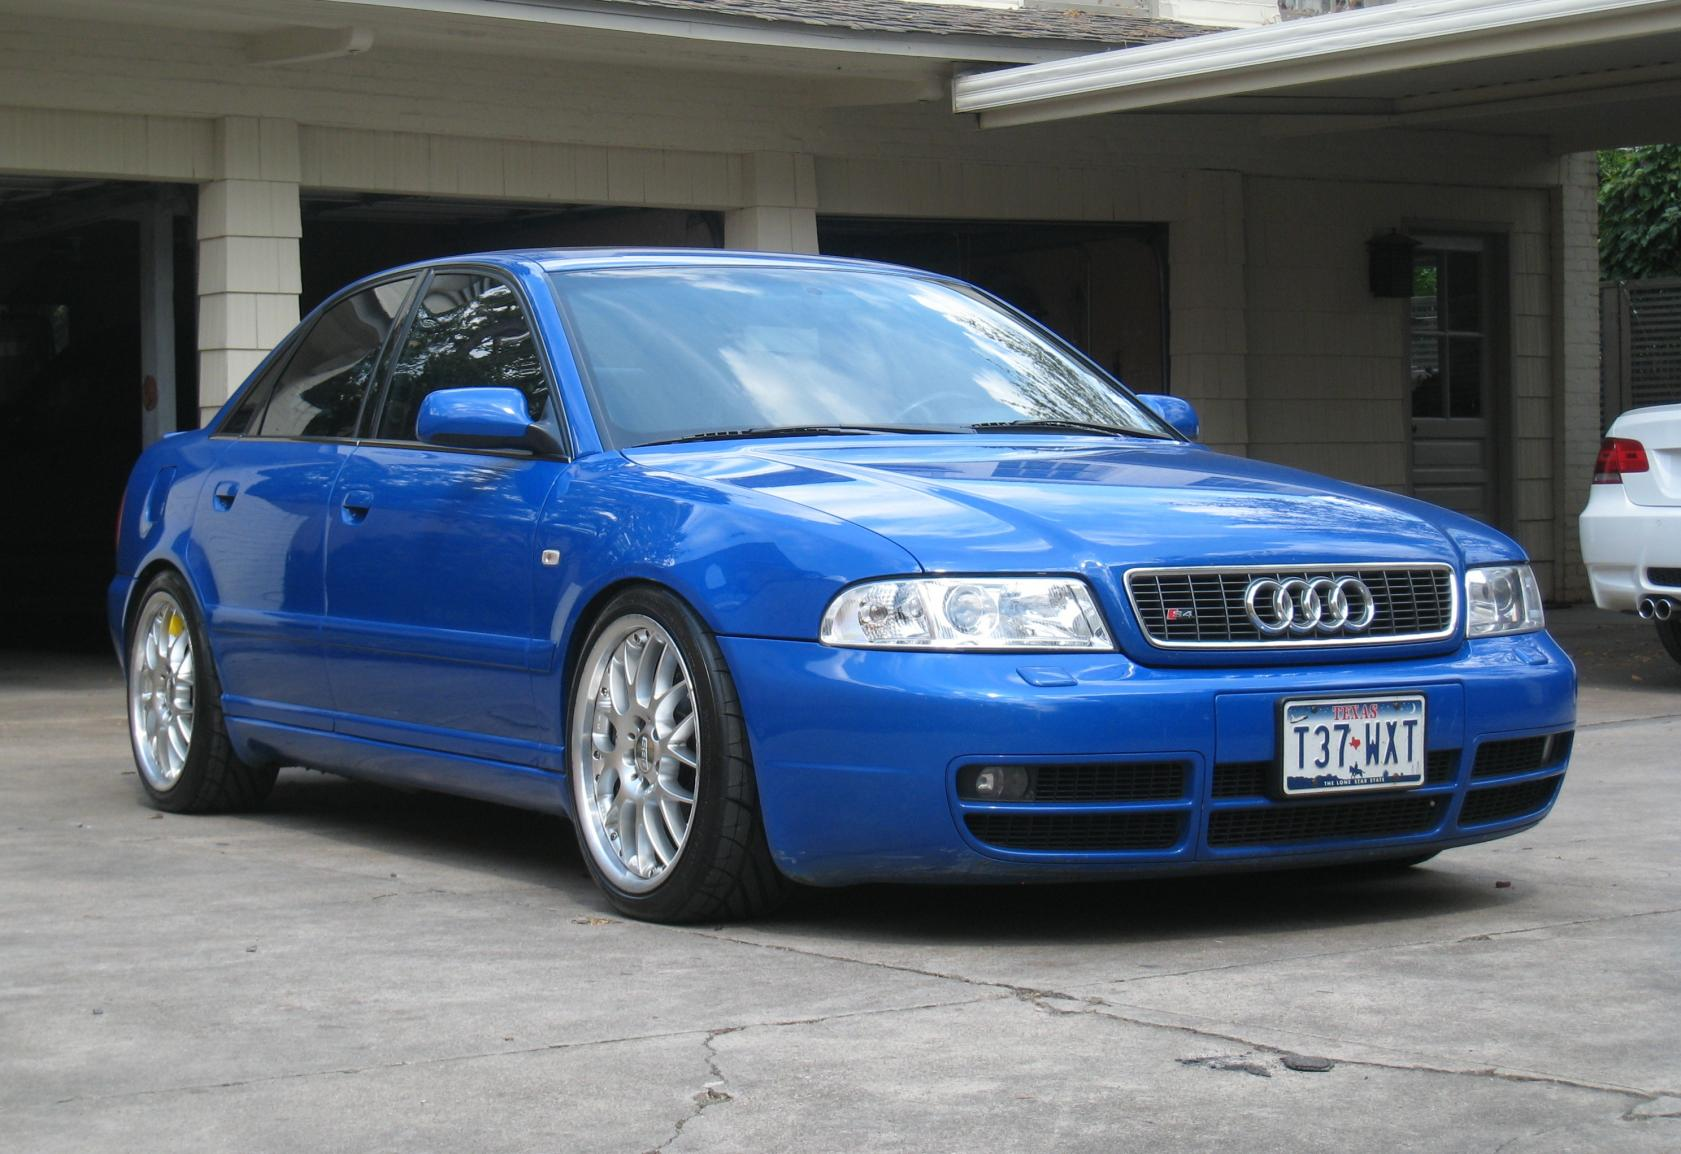 tfsi s quattro pistonheads tronic audi classifieds sale for supercharged in used middlesex cars